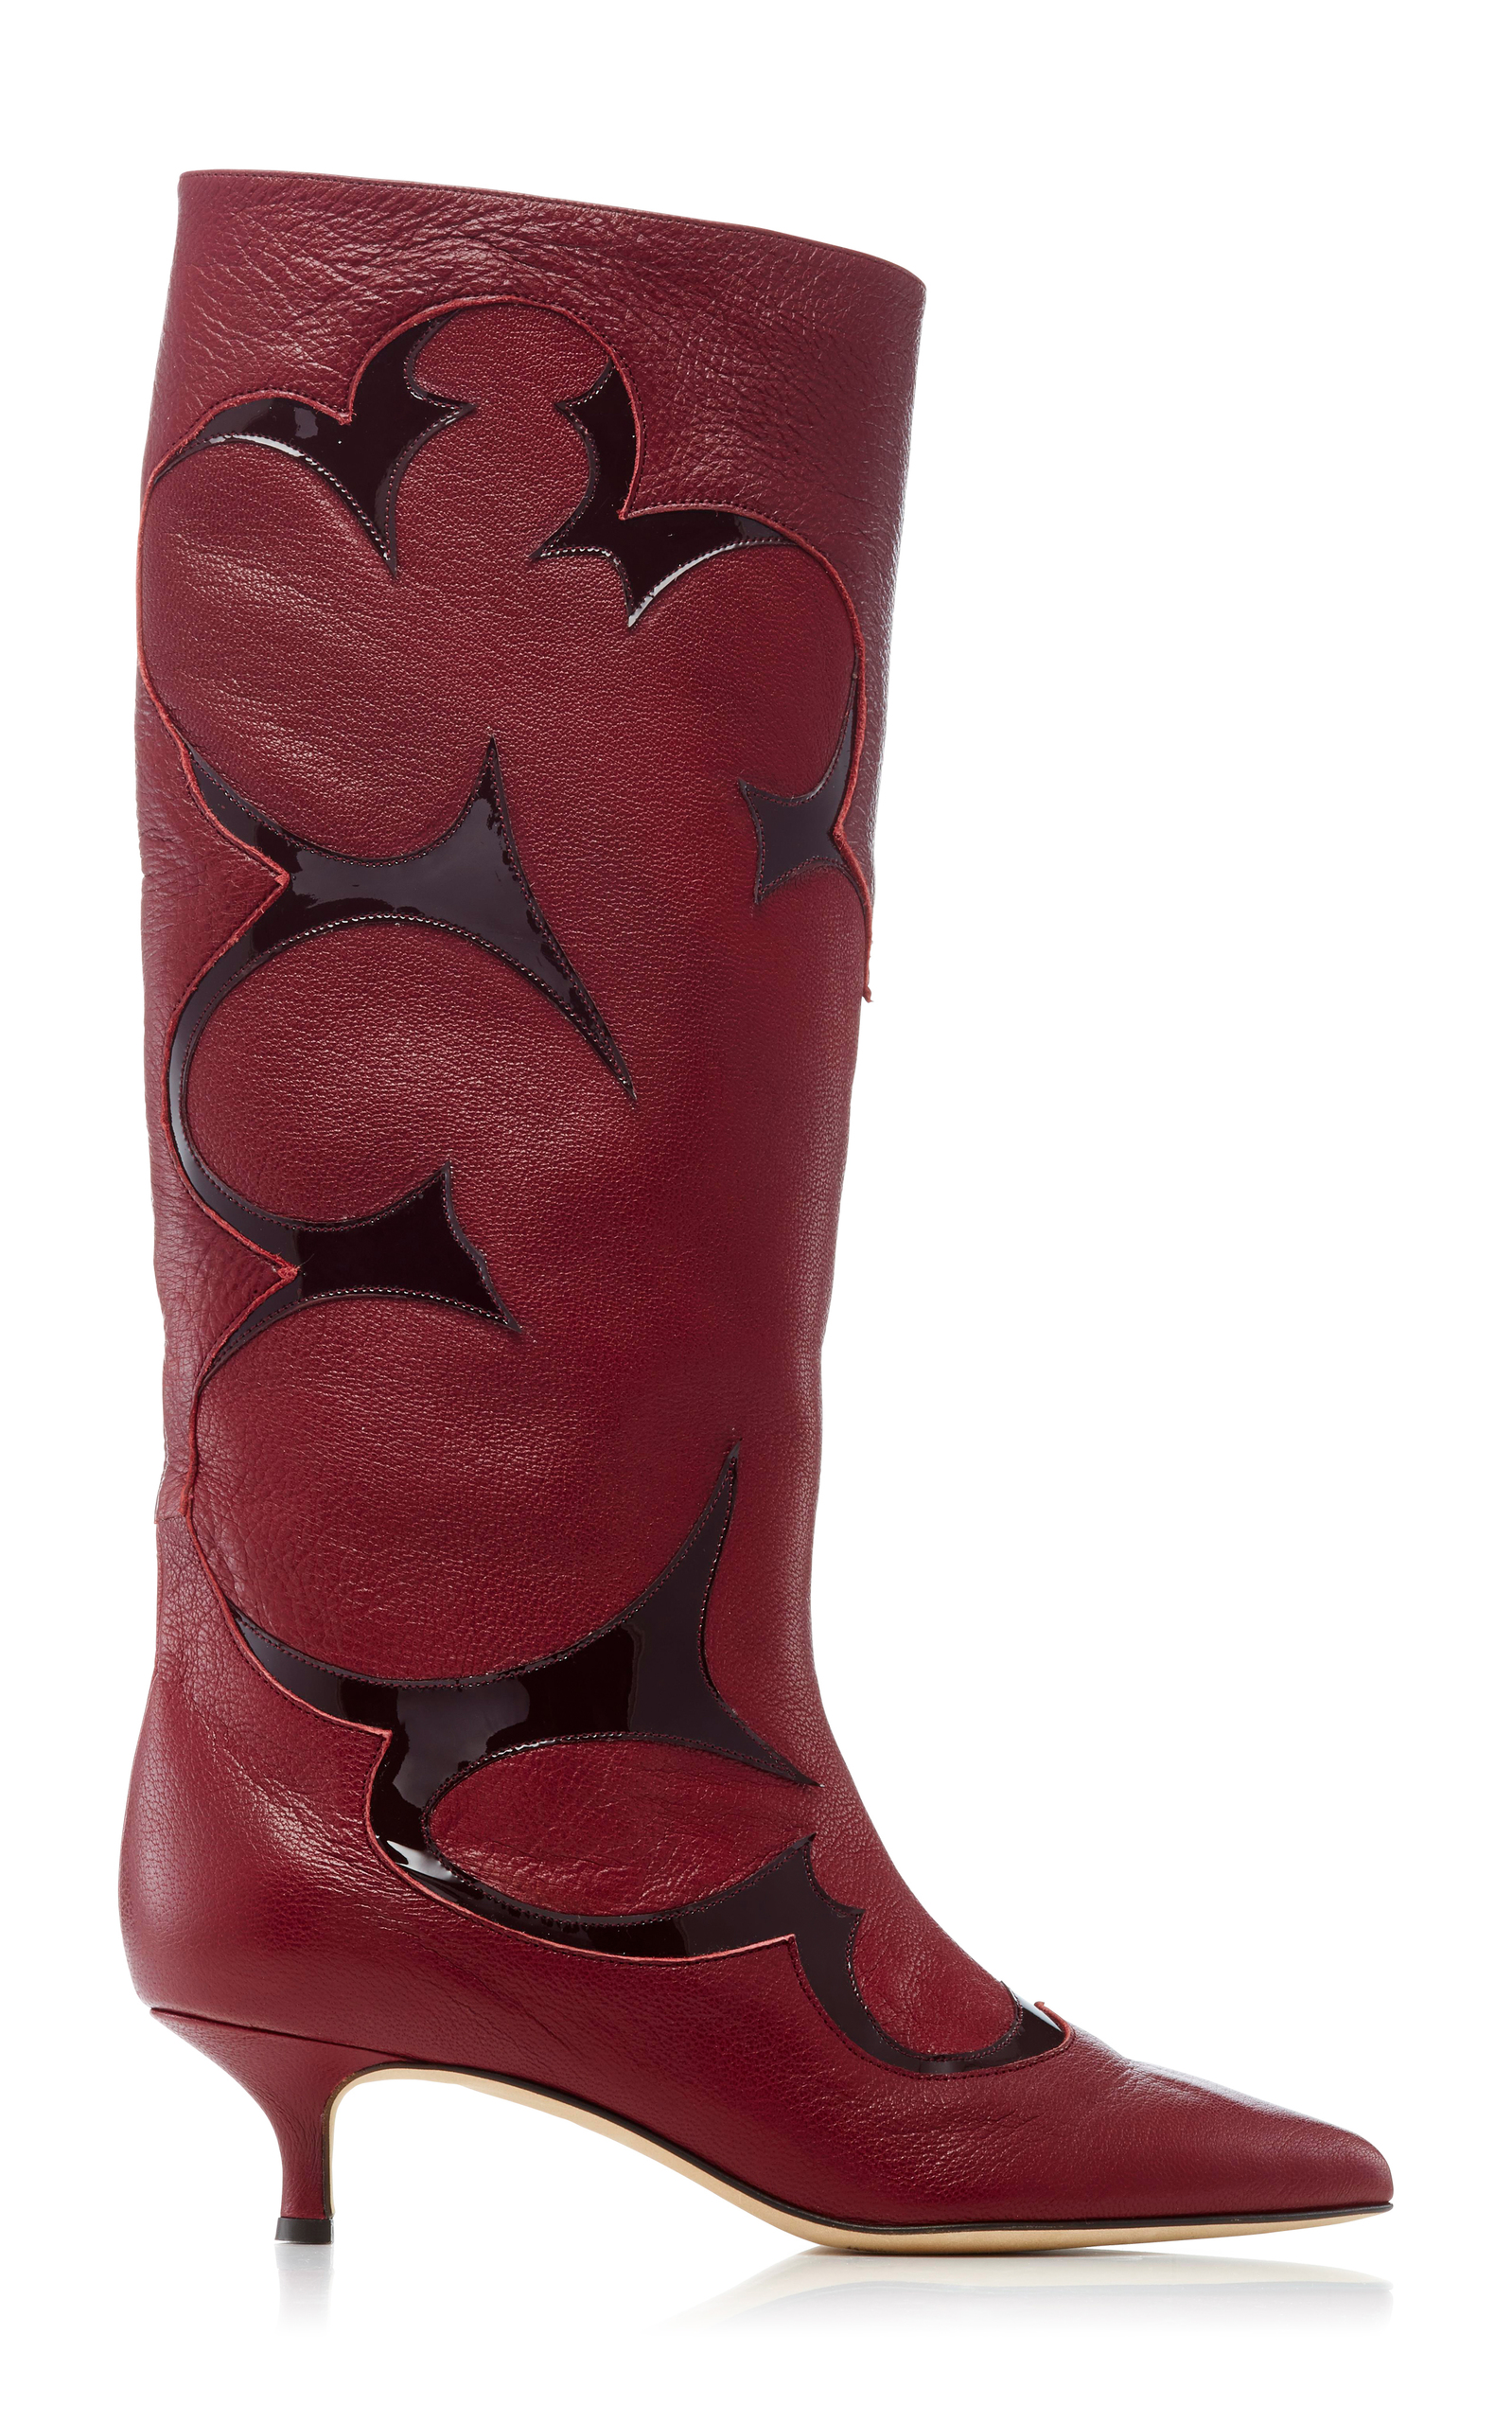 JAGGER PATENT-TRIMMED LEATHER BOOTS